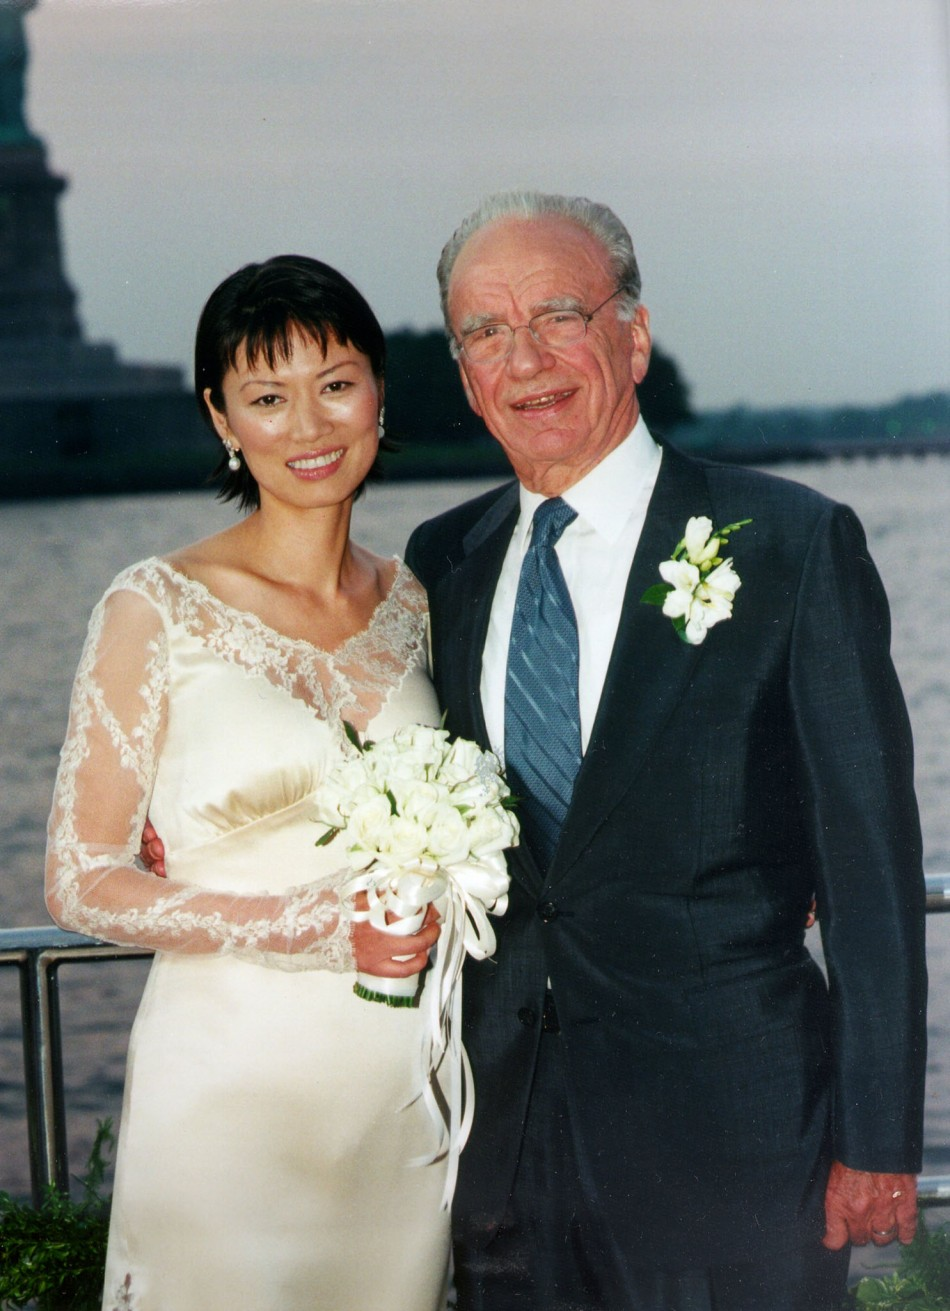 Wendi Deng and Rupert Murdoch were married on the media mogul's yacht in New York harbour. 25 June 1999